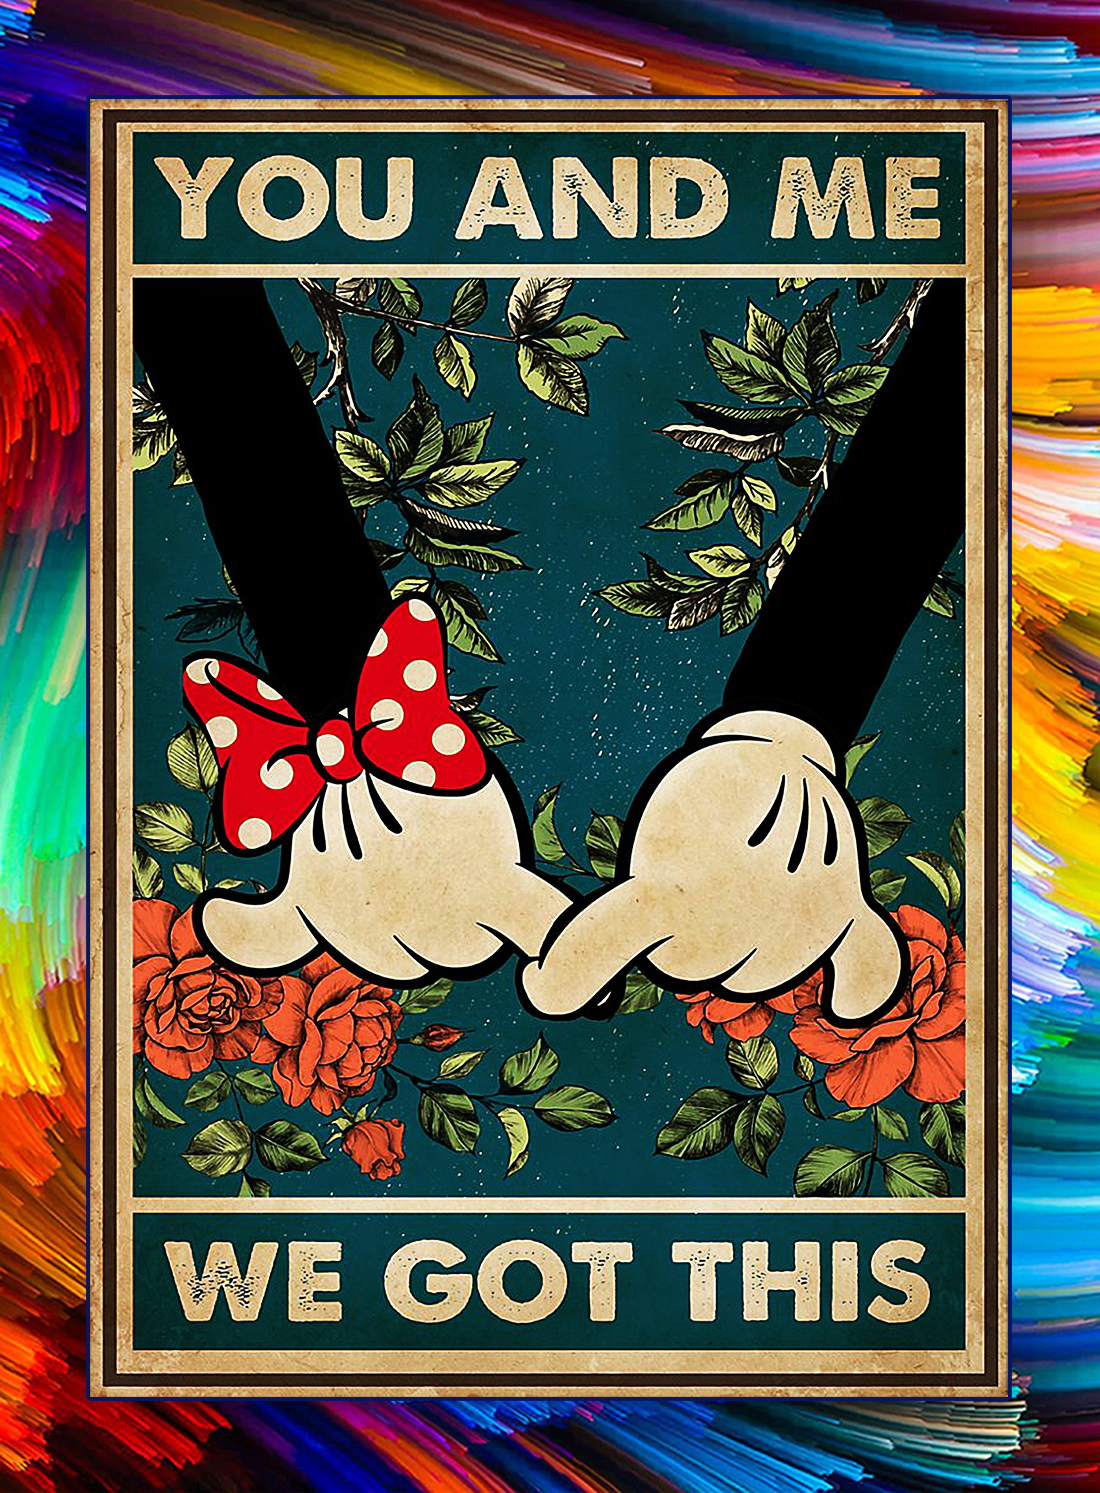 MICKEY AND MINNIE YOU AND ME WE GOT THIS POSTER - A4